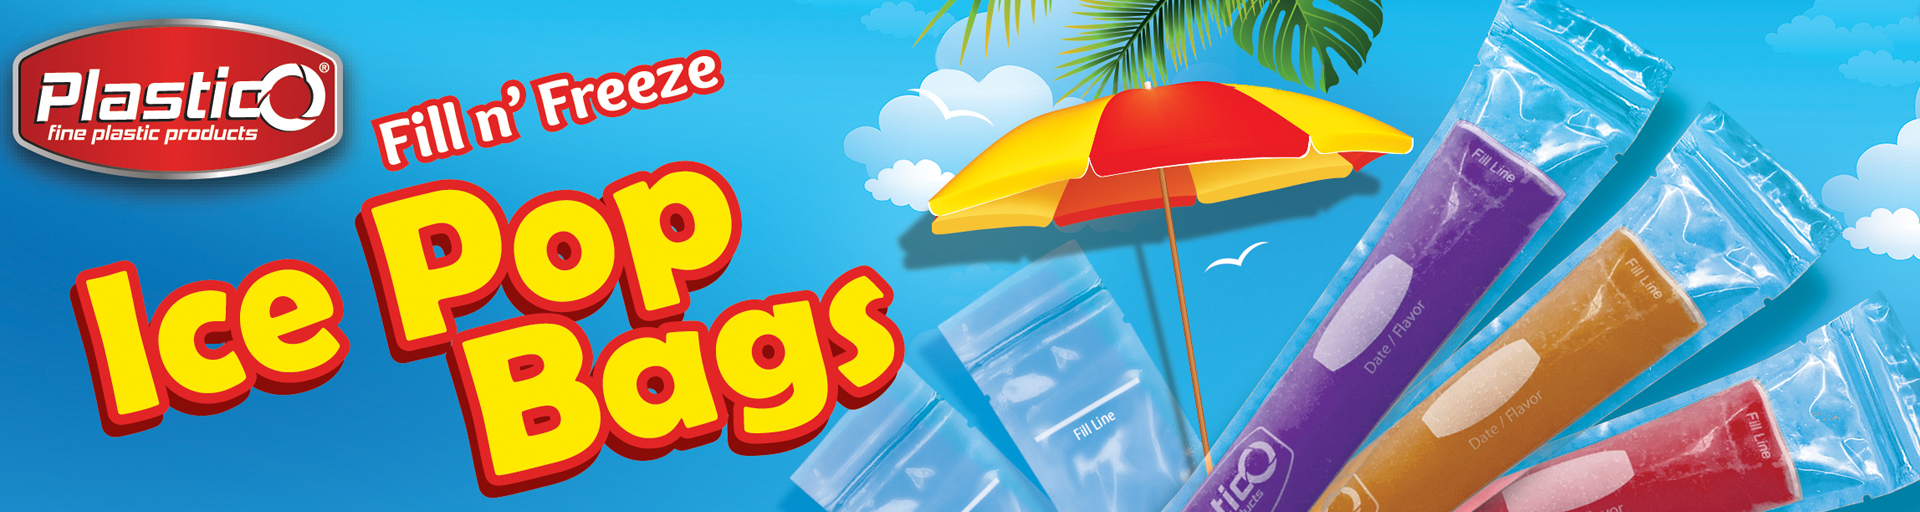 Plastico Ice Pop Bags